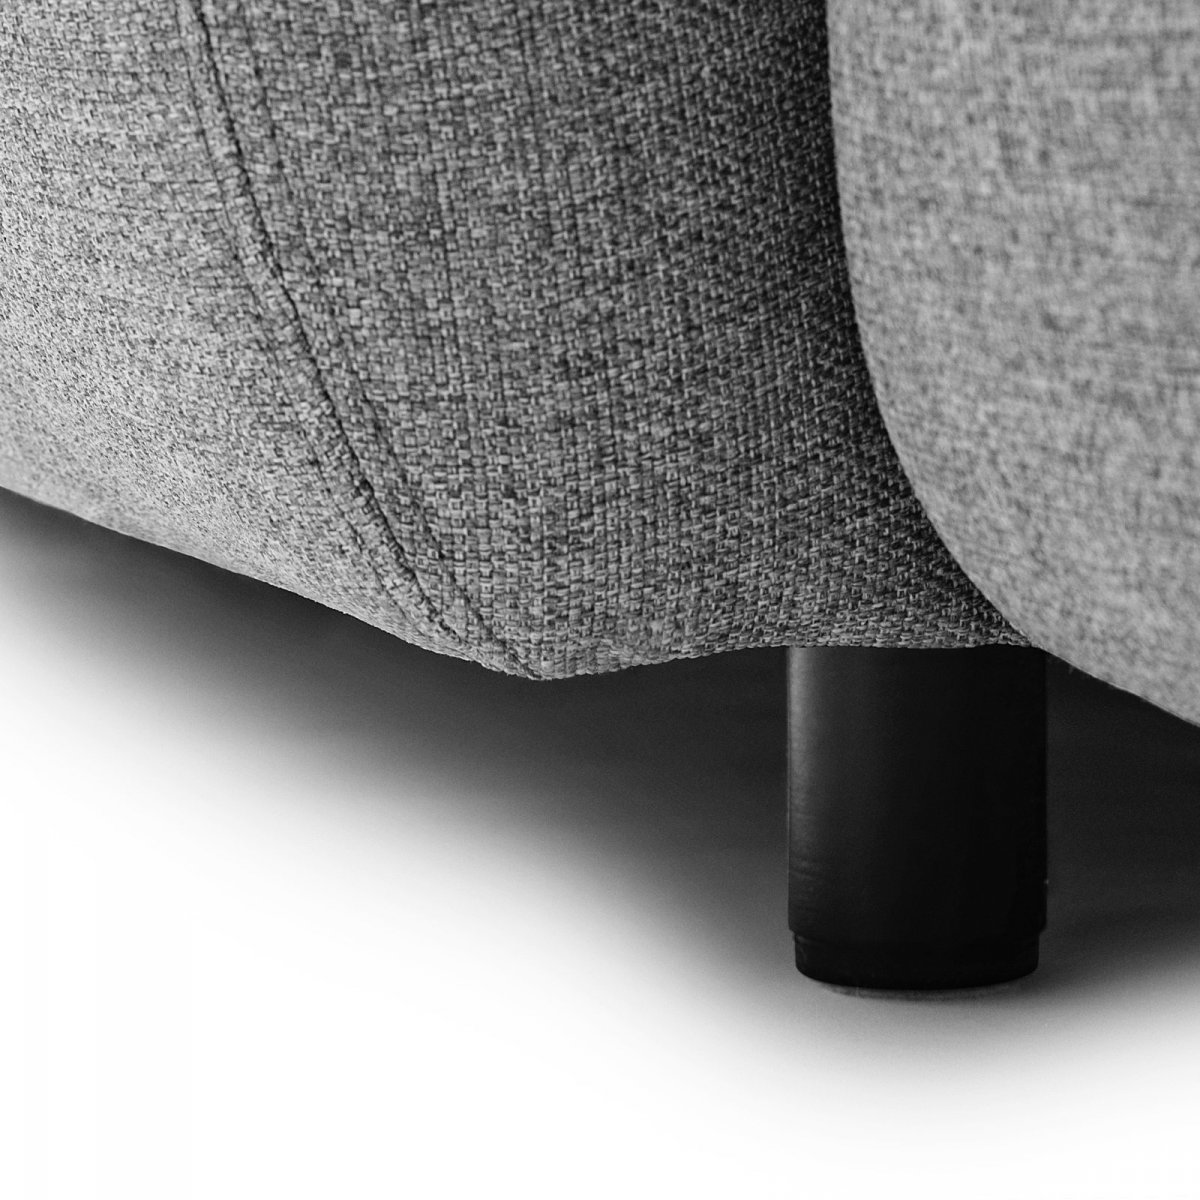 Swell Sofa 2 Seater, leg detail.